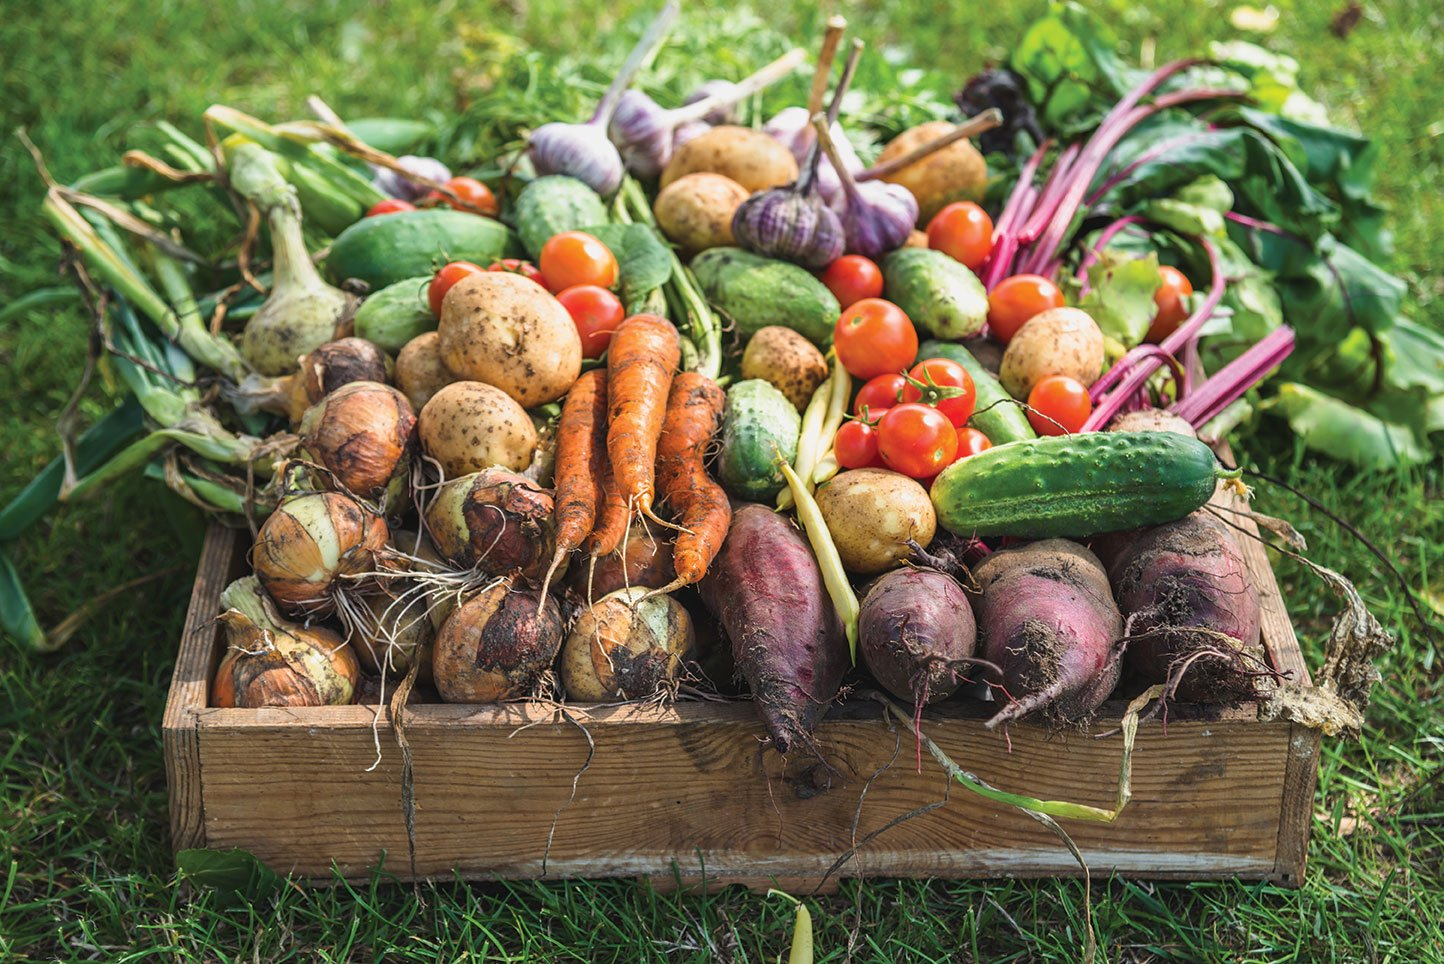 eat what you grow eat your garden vegetables carrots potatoes beets greens tomatoes